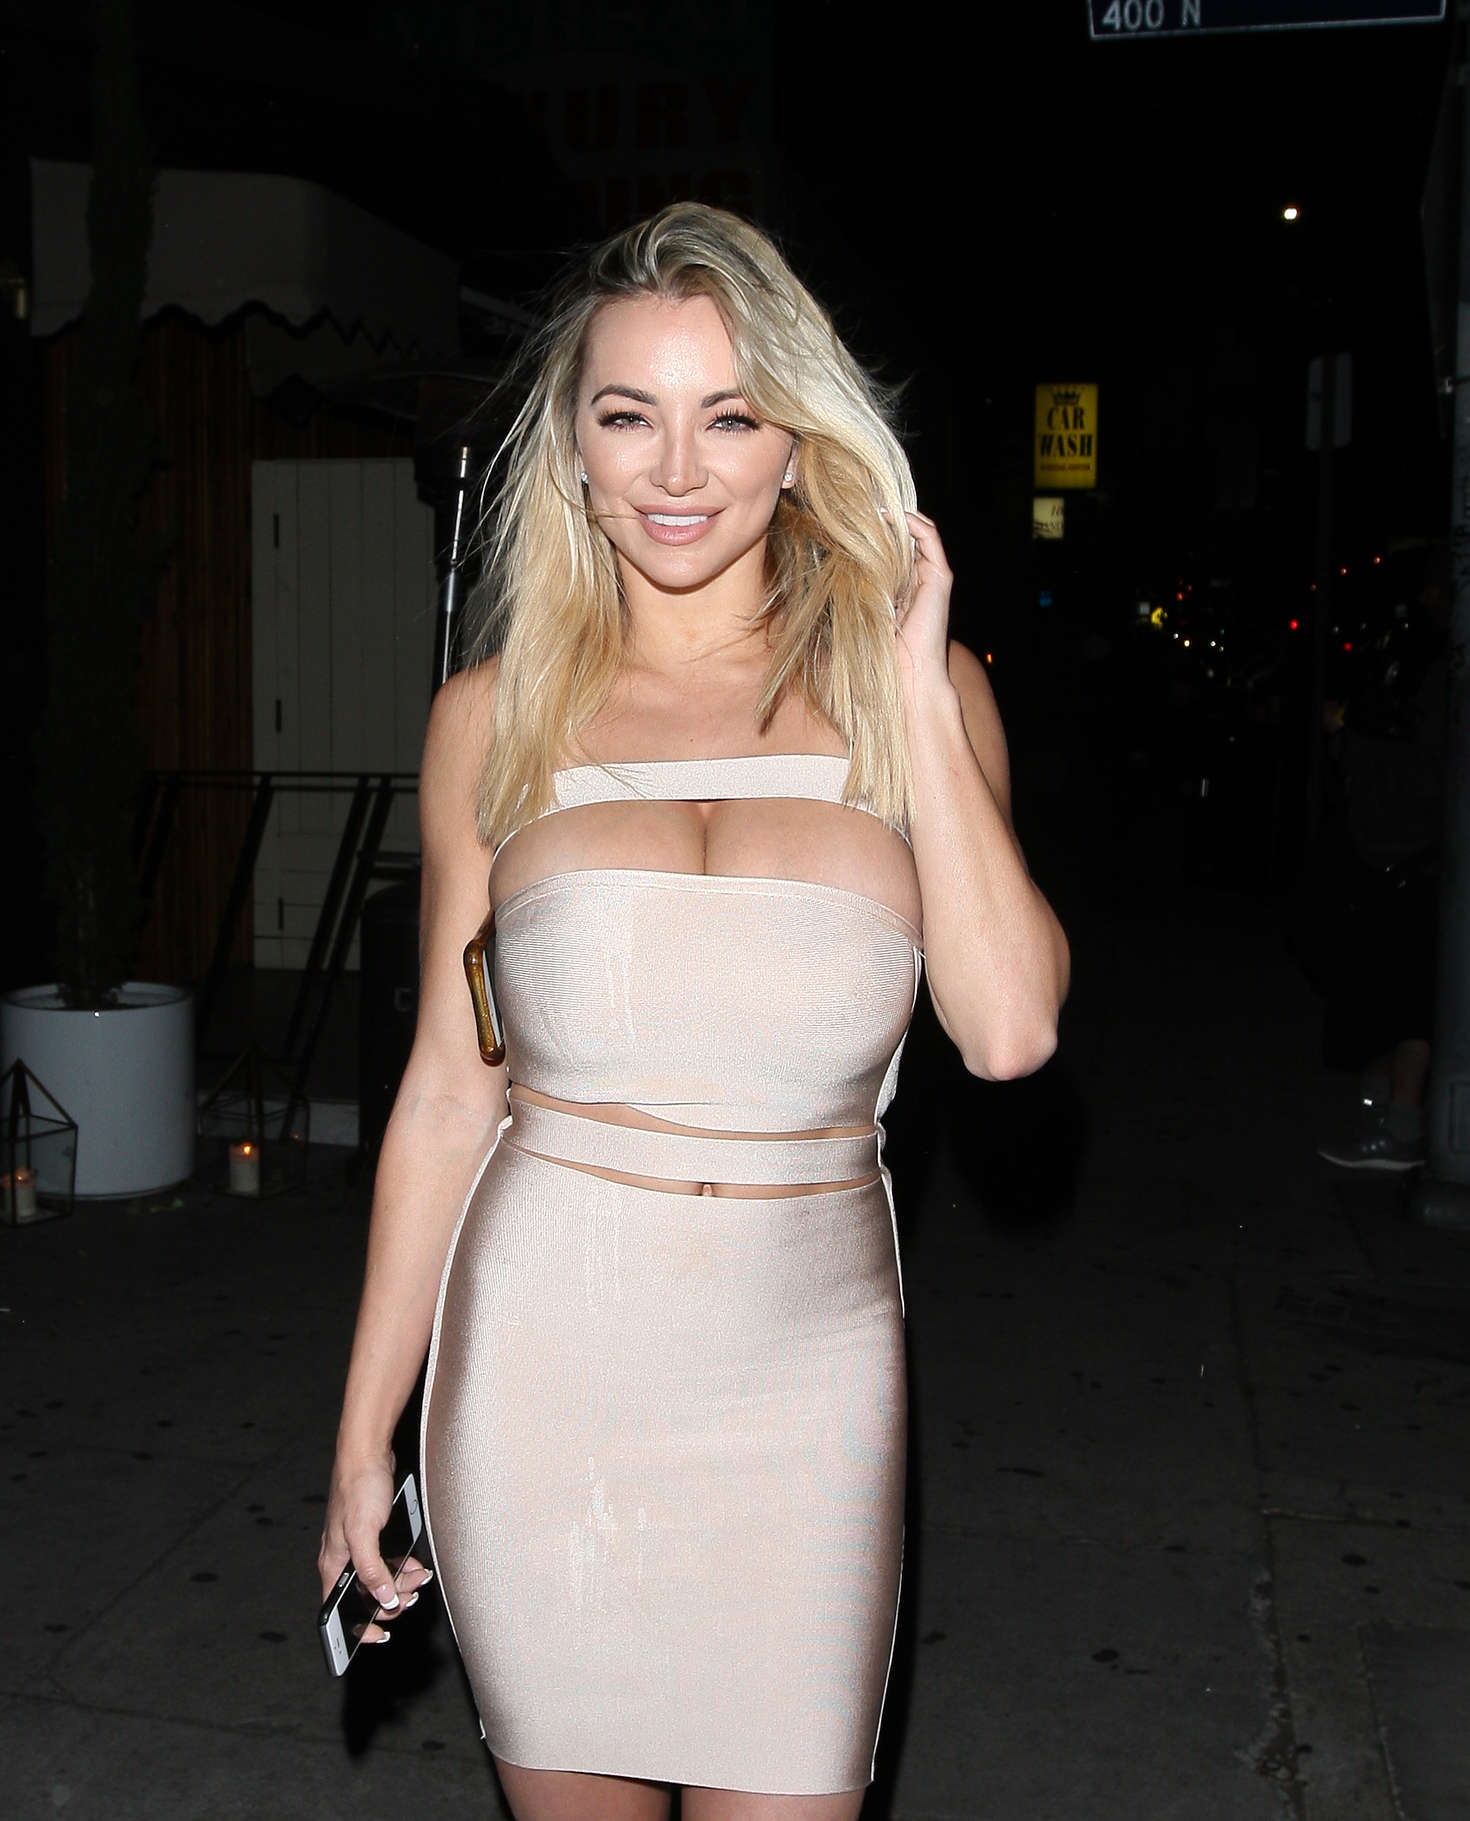 Lindsey Pelas in Tight Dress at Nice Guy Club in West Hollywood